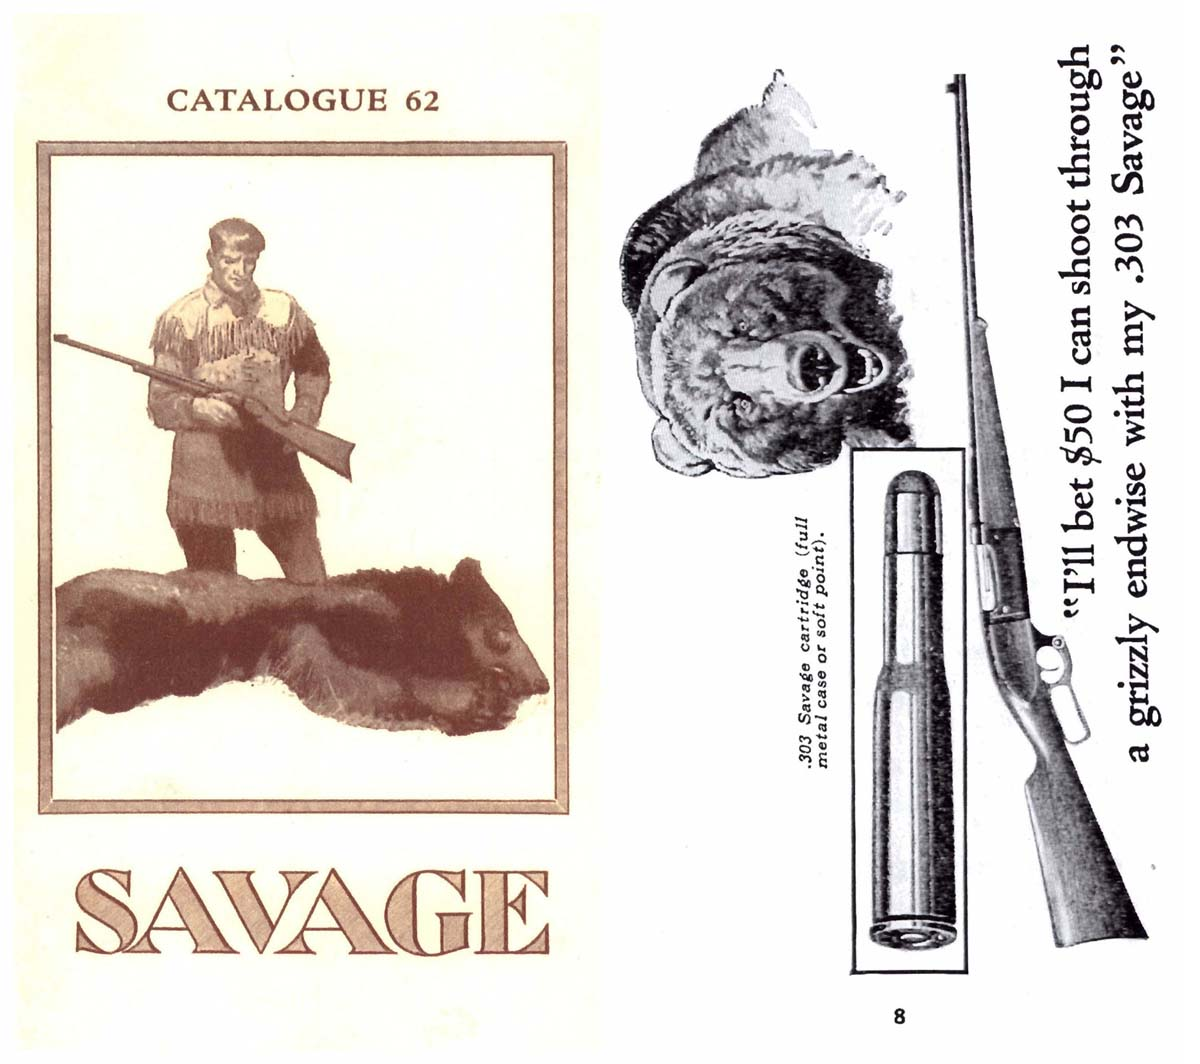 Savage c1923 Arms Company No. 62 Catalog